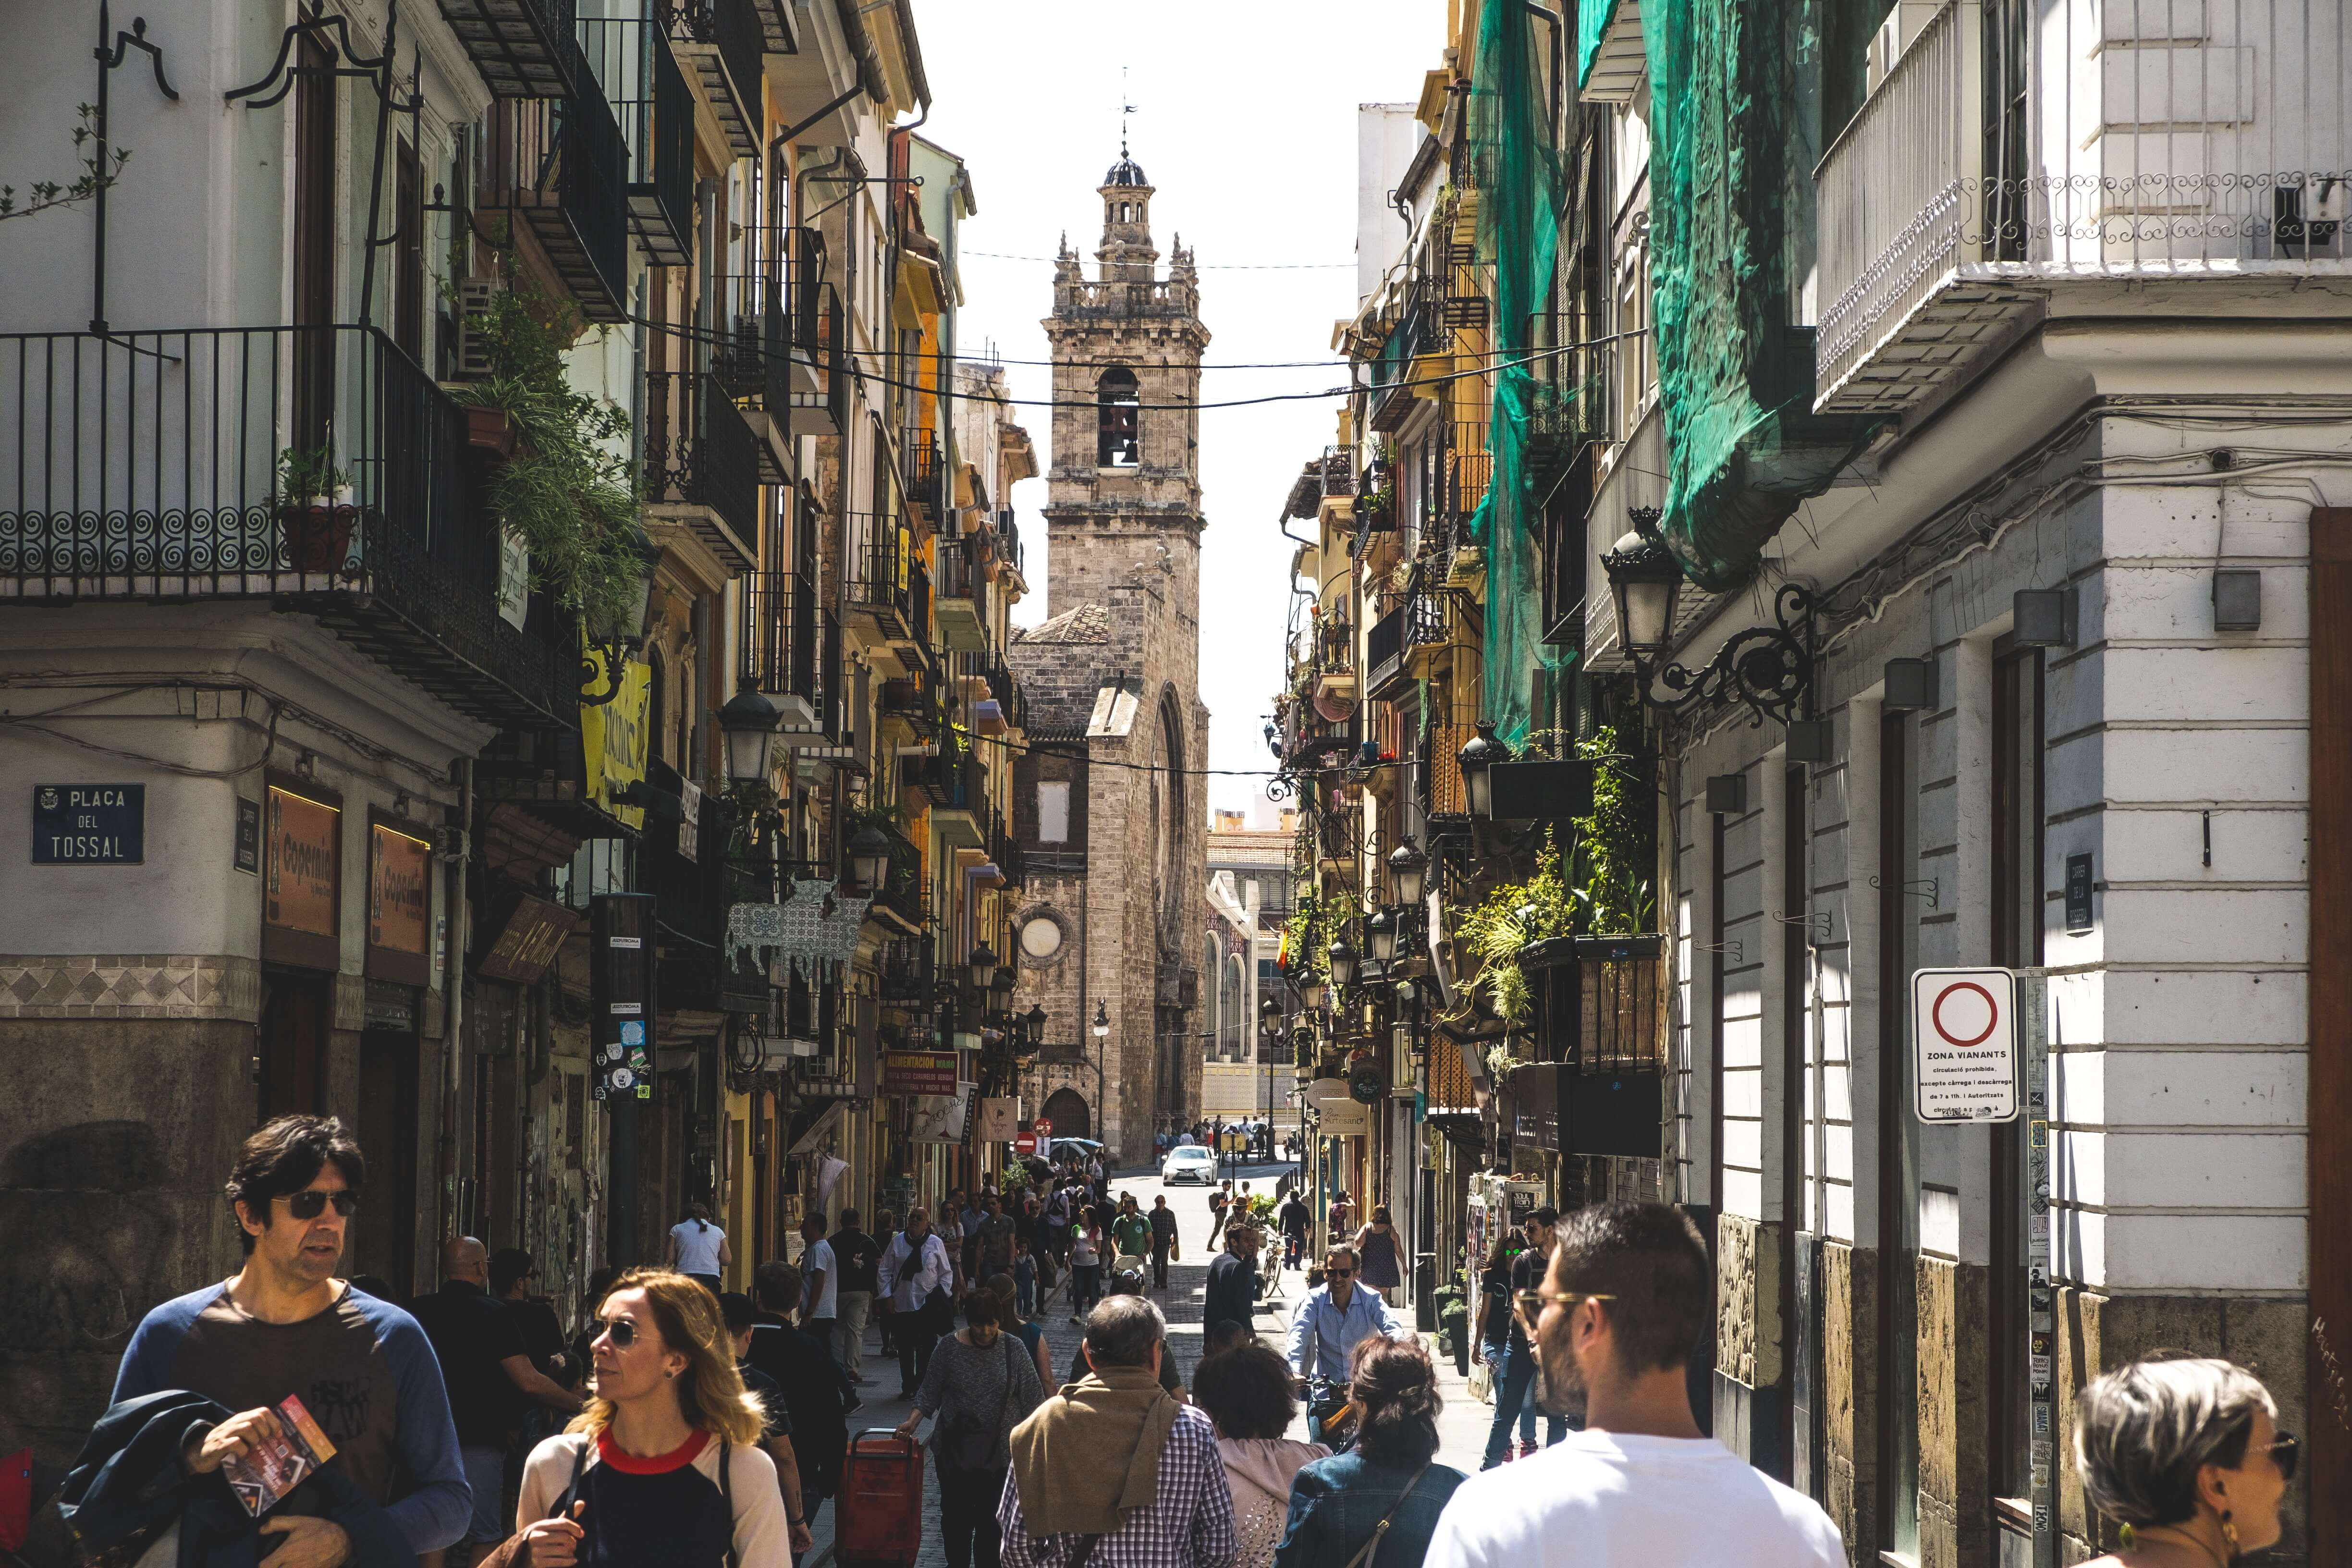 most valencia spain festivals take place in summer